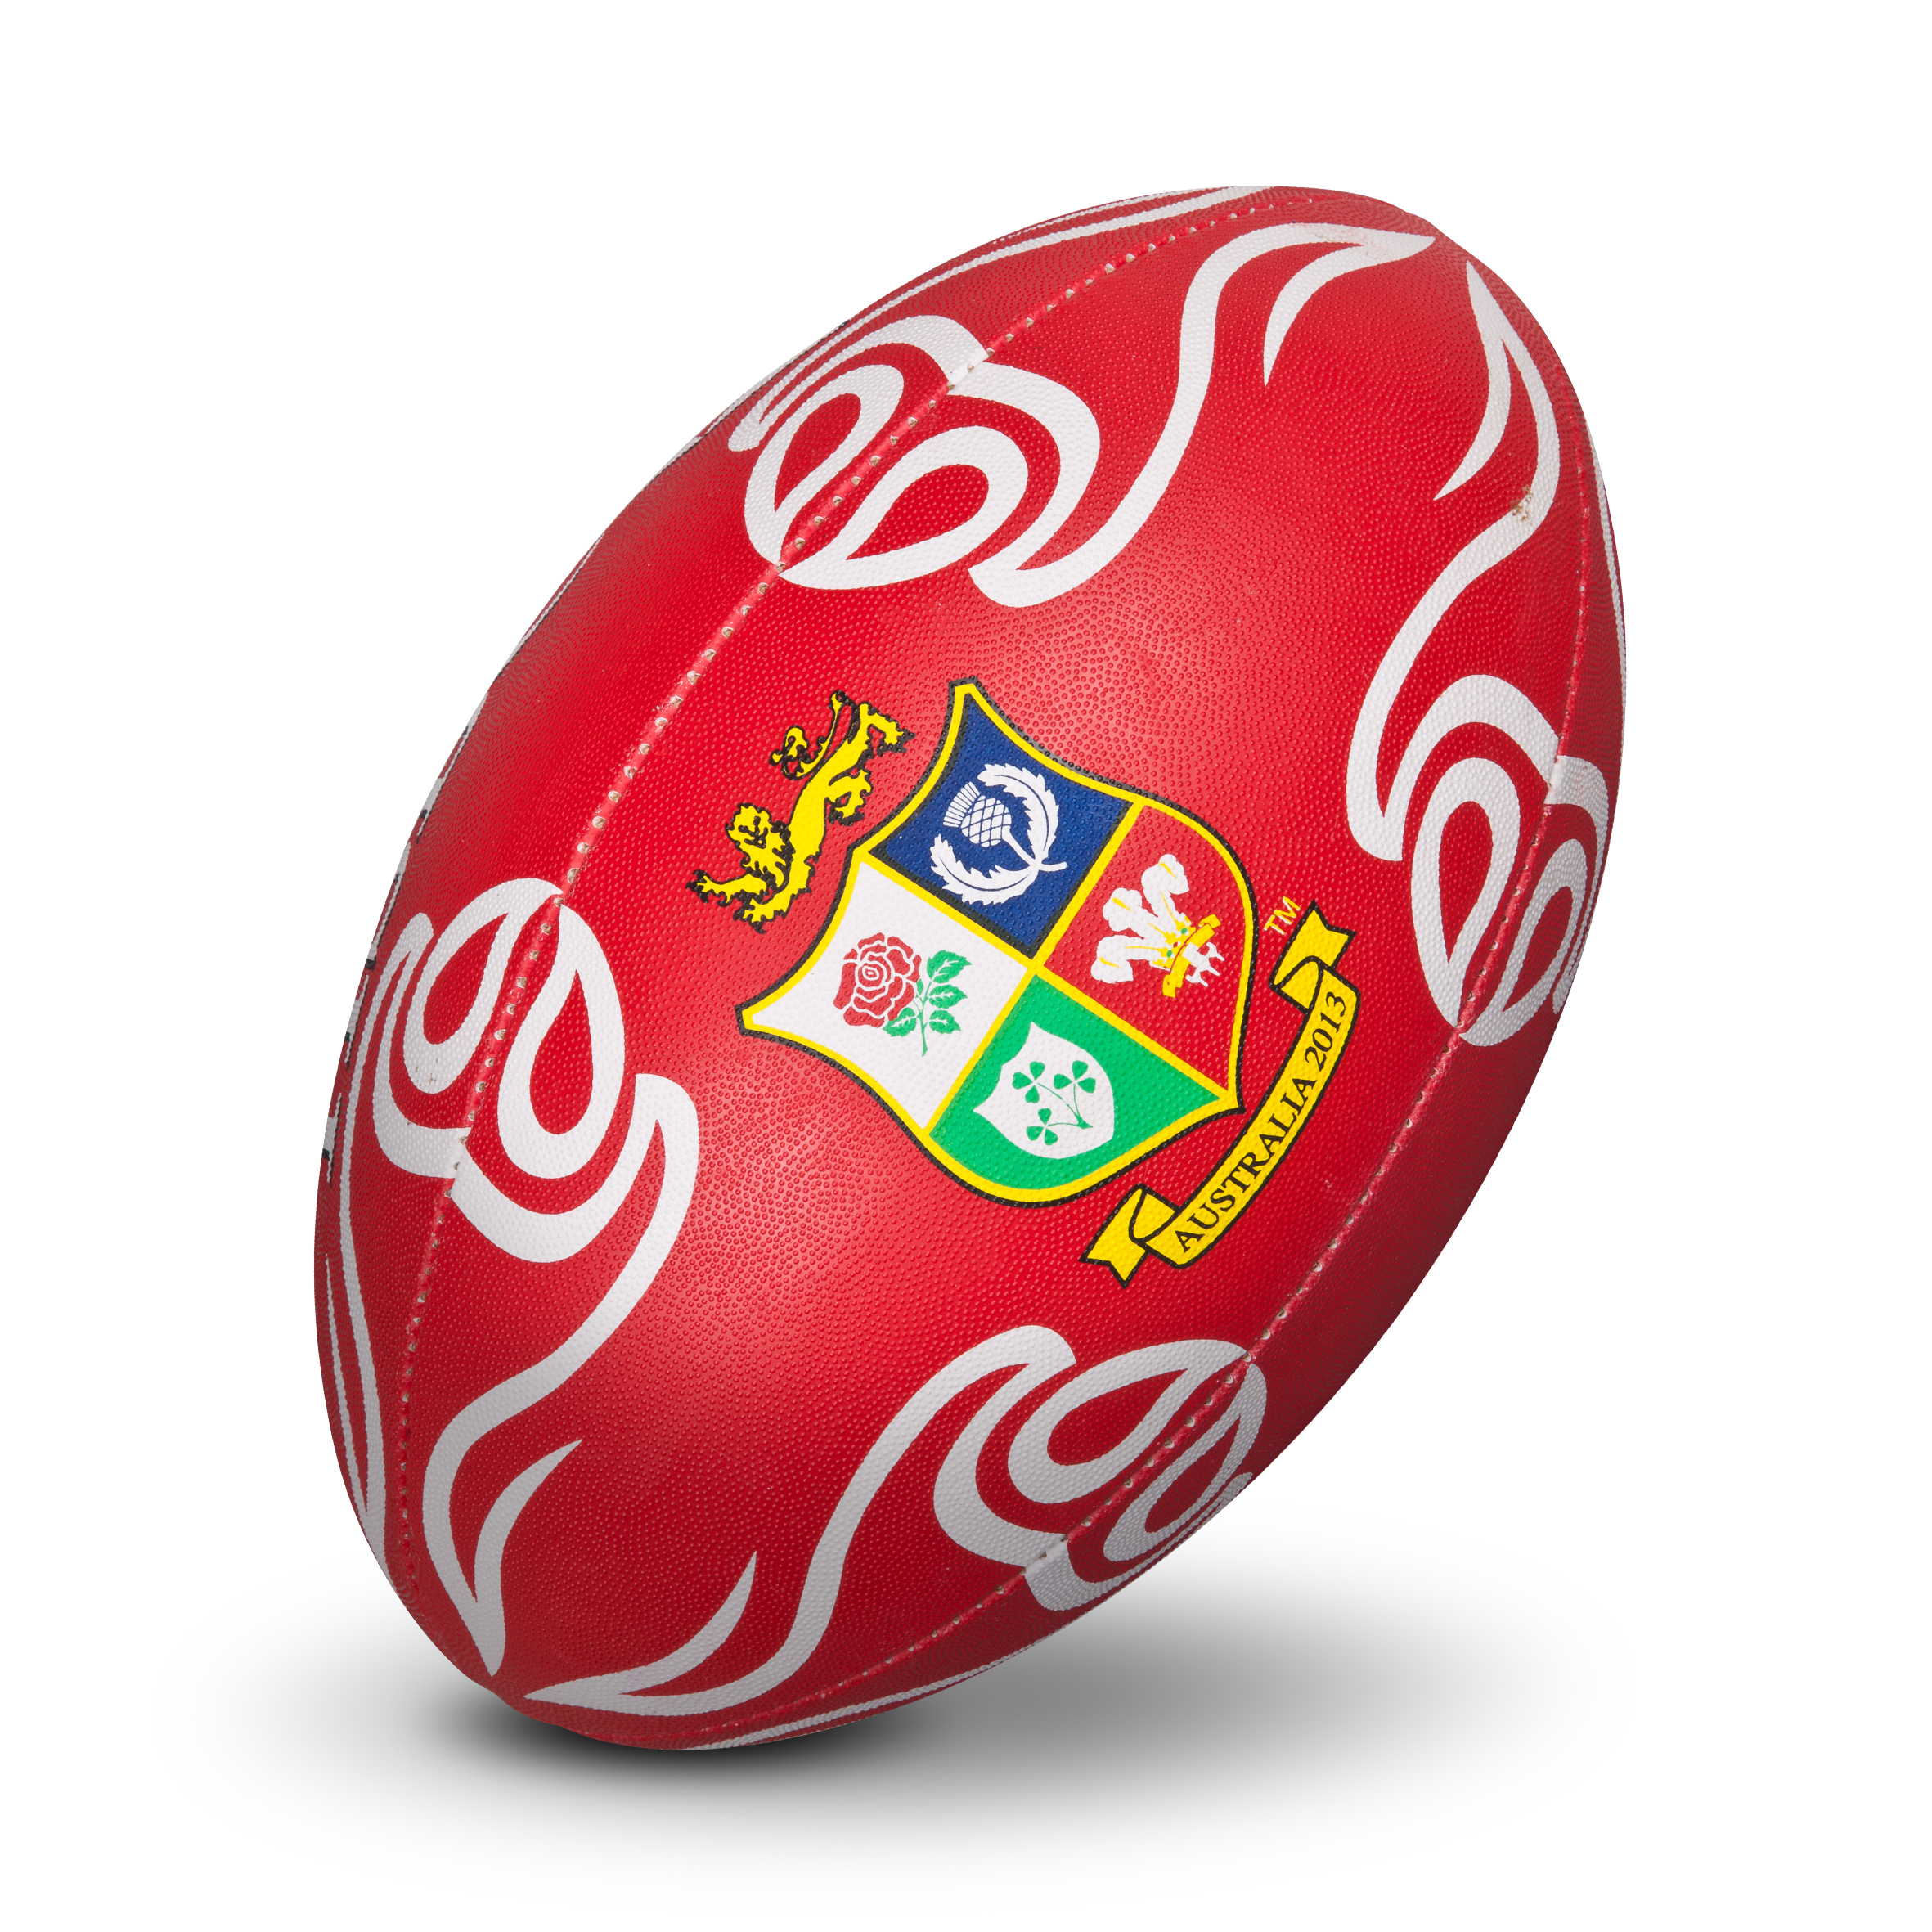 British and Irish Lions Supporters Rugby Ball - Red/White